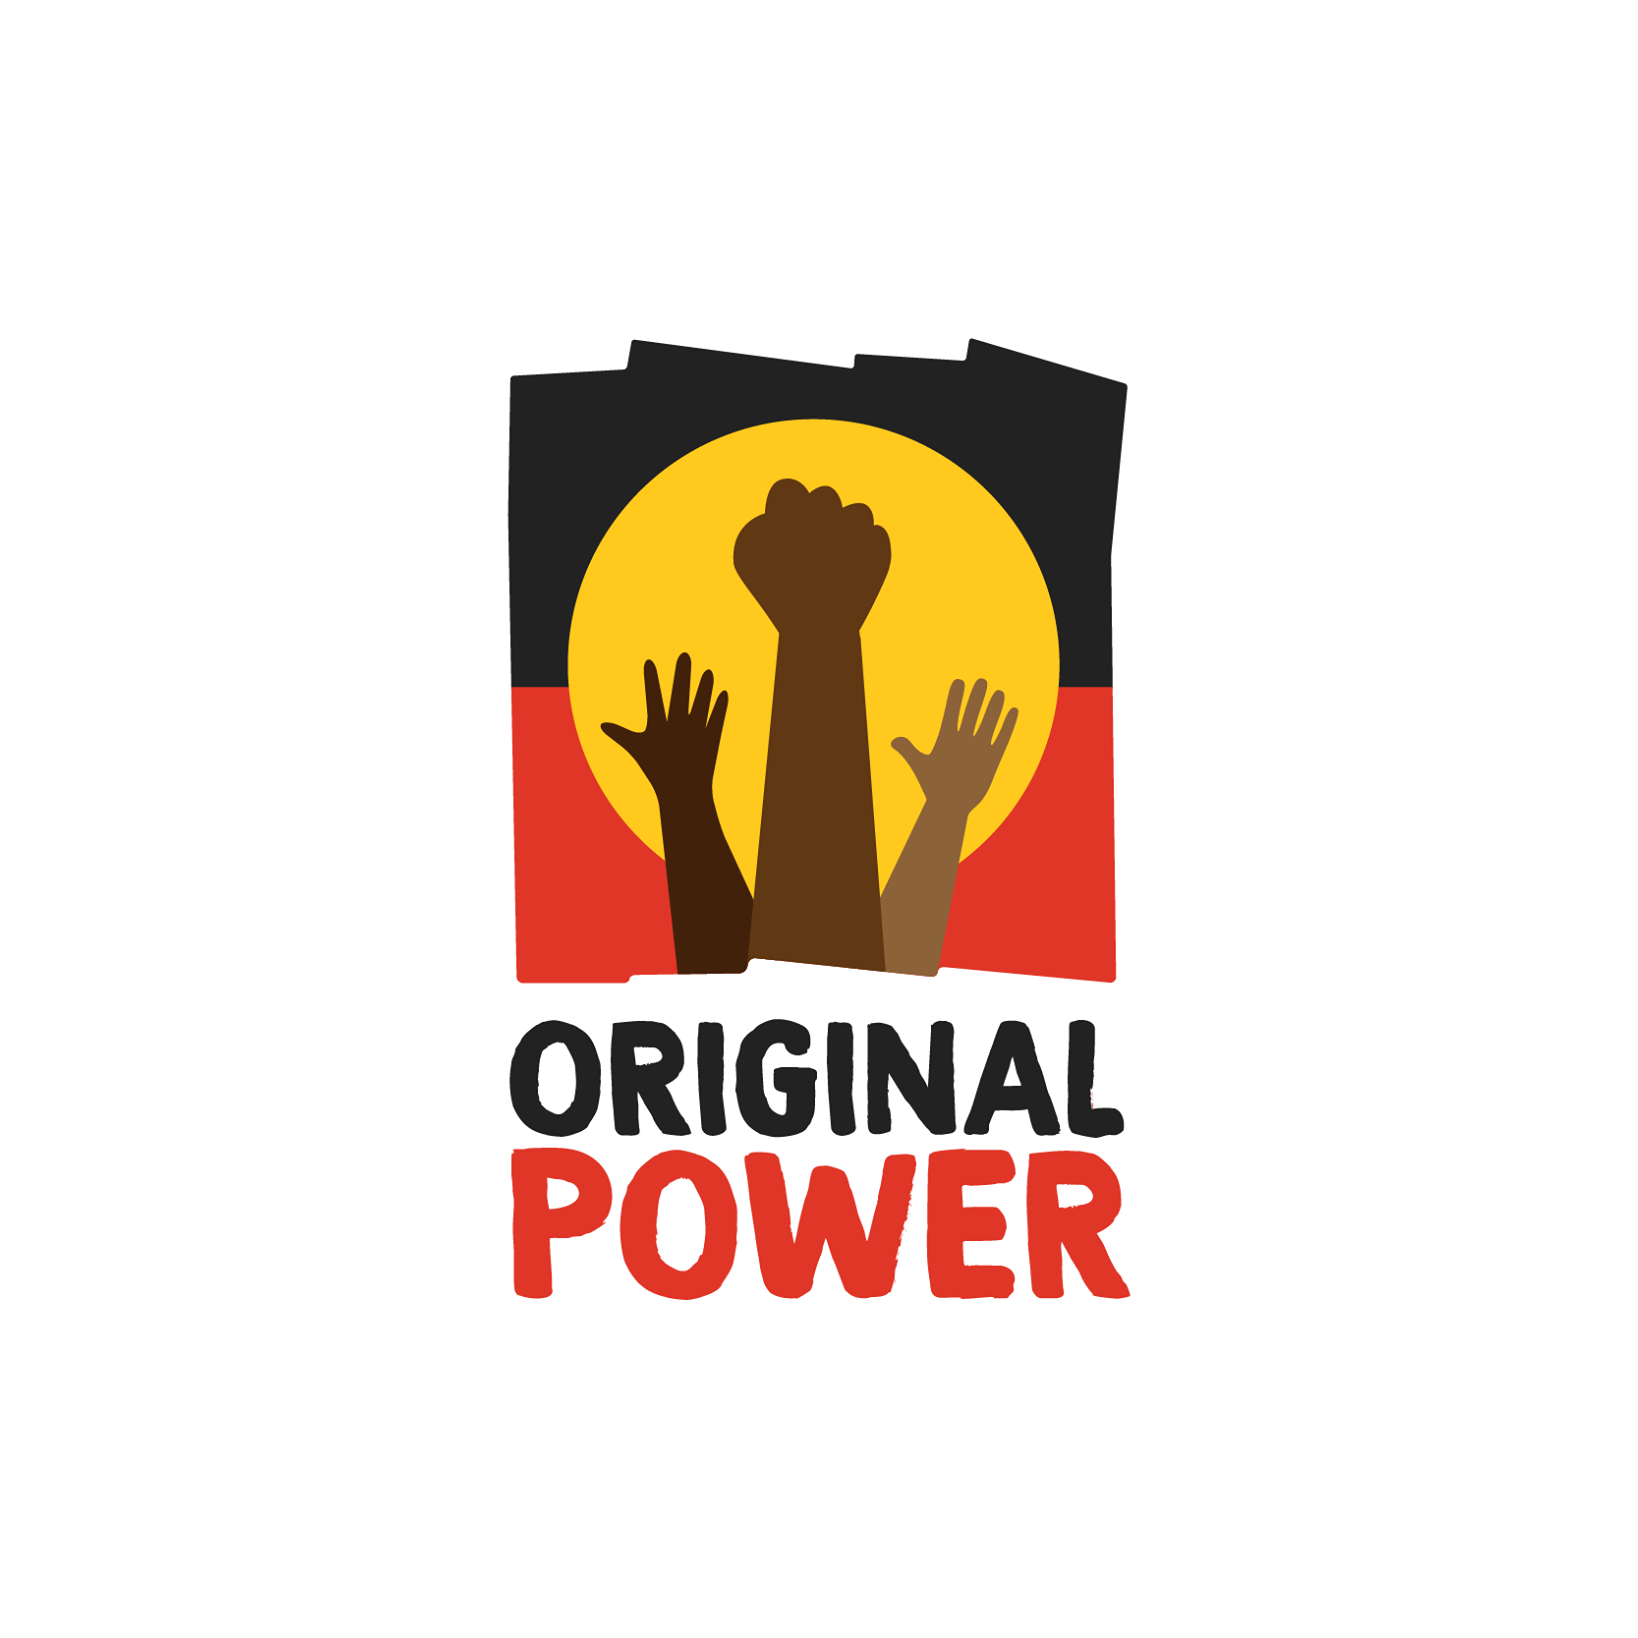 Original Power